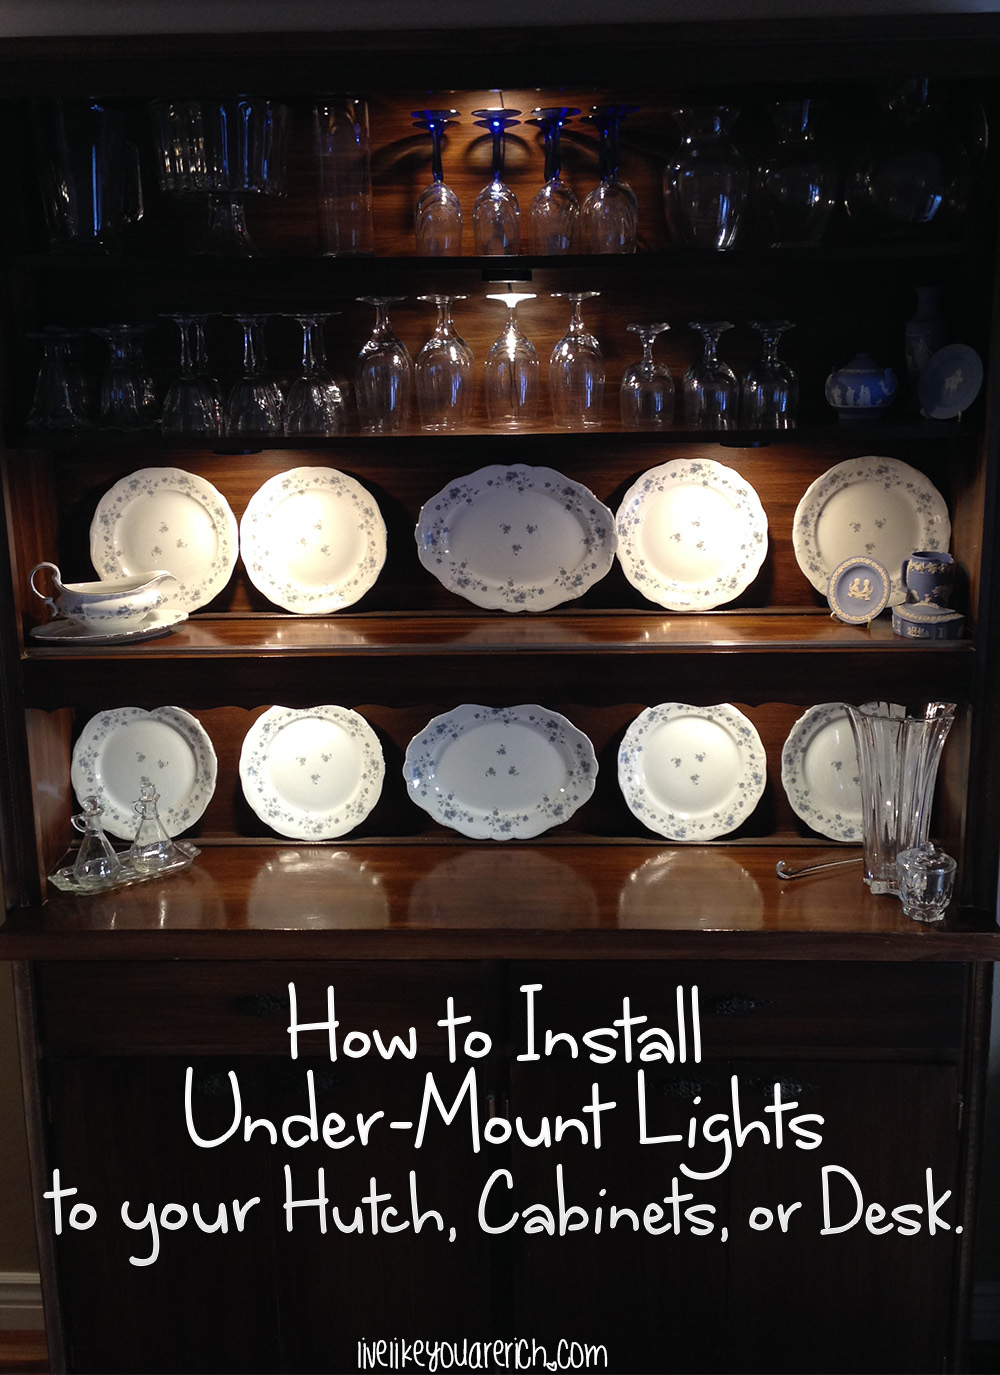 How to Install Under-Mount Lights on Your Hutch, Cabinets, & Desk.